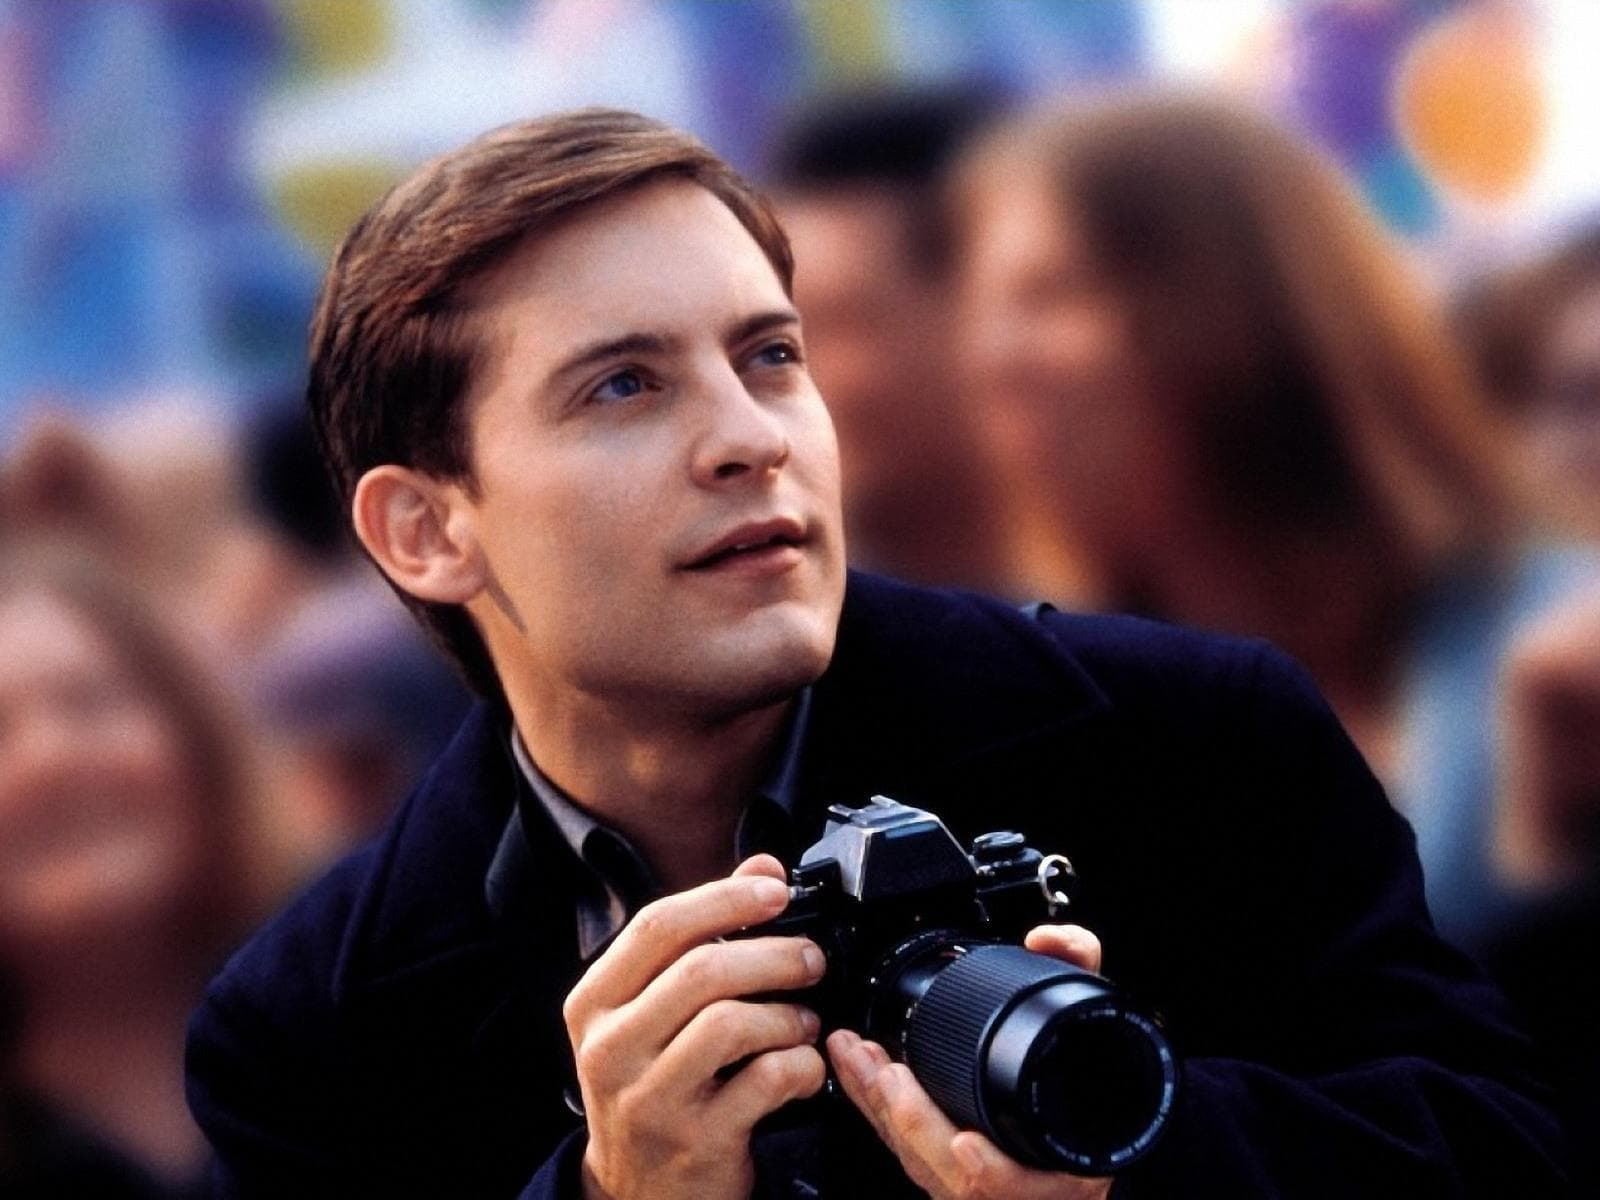 Tobey Maguire Widescreen